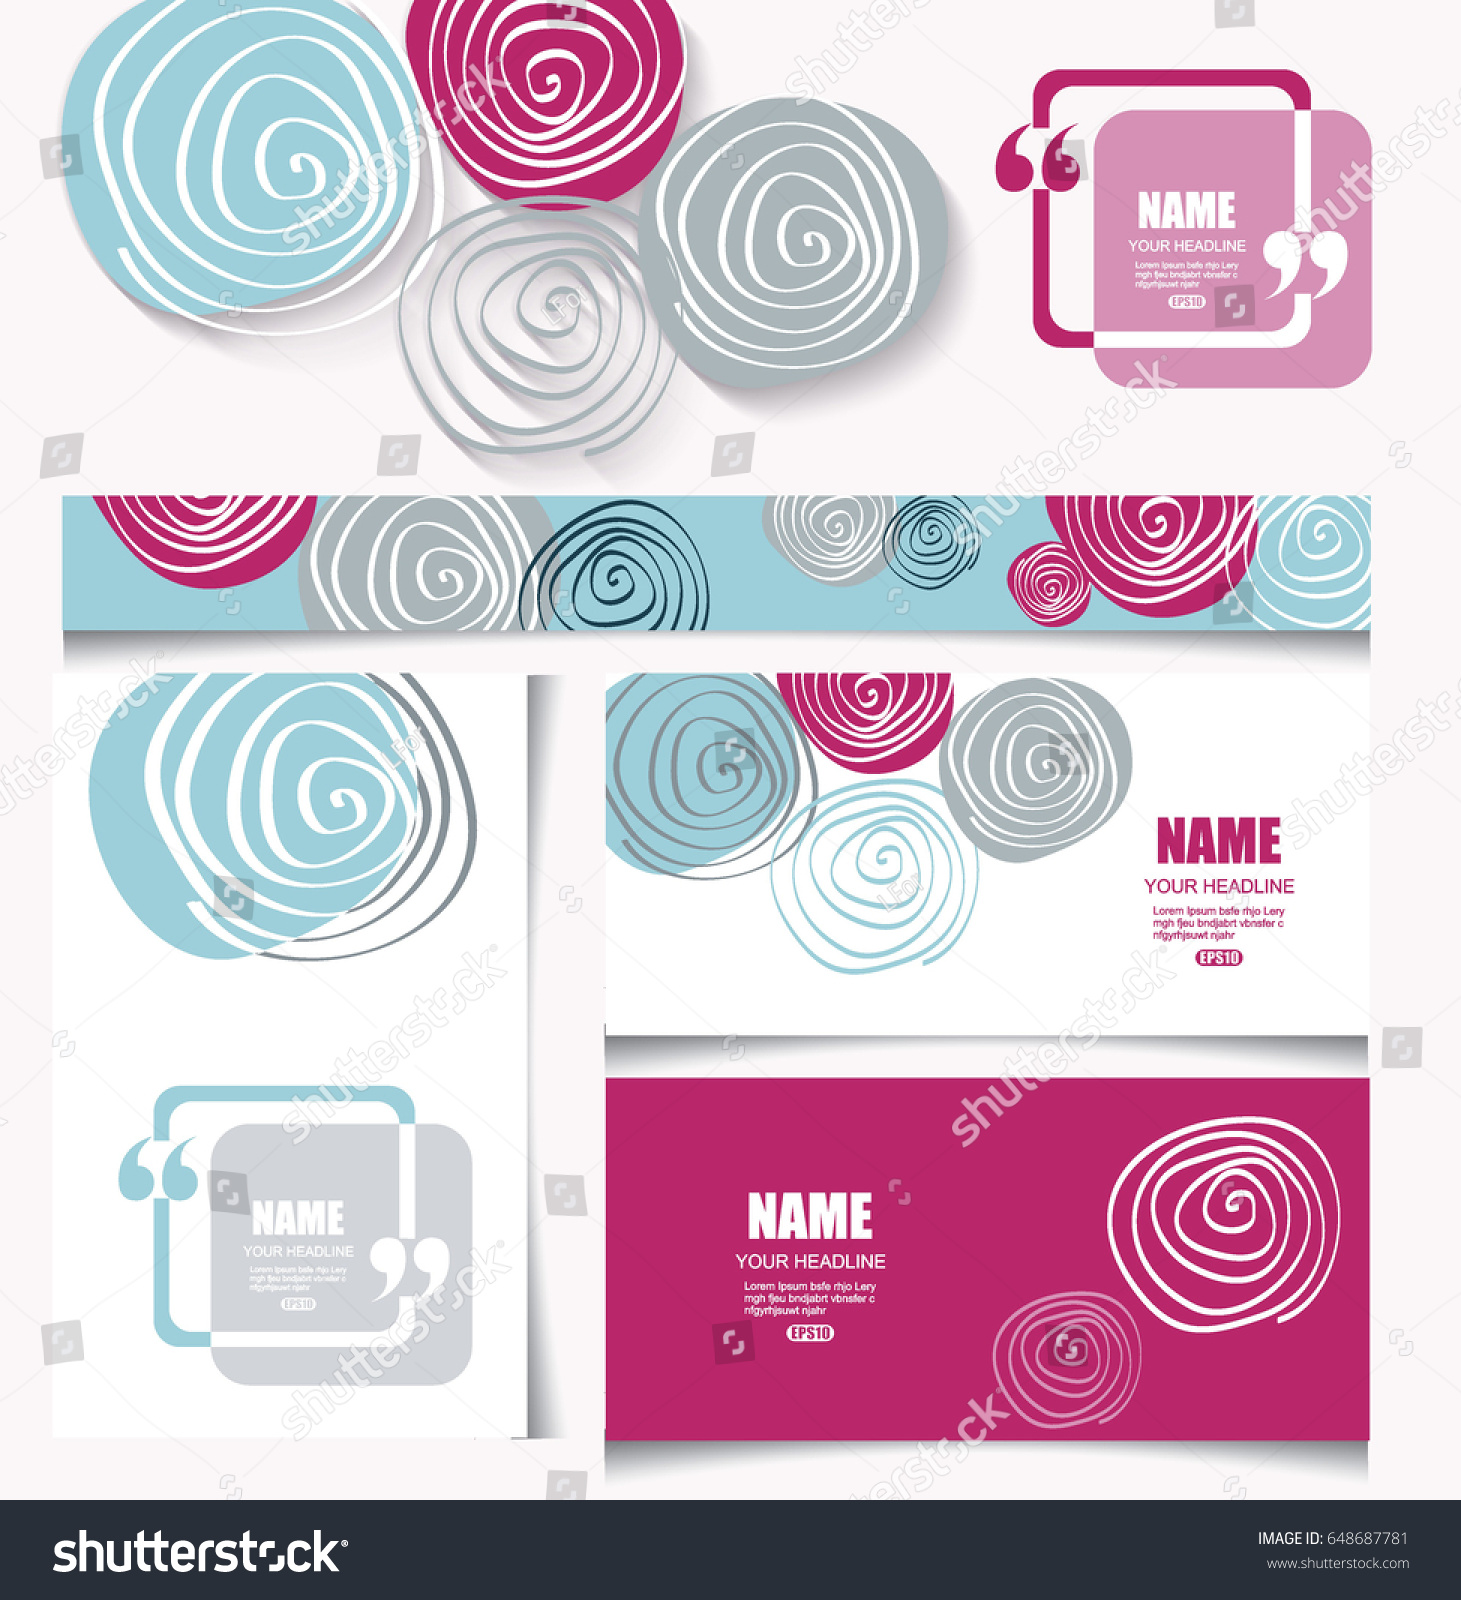 Wedding invitation business cards gallery free business cards colorful card set flower design can stock vector 648687781 colorful card set with flower design can magicingreecefo Choice Image